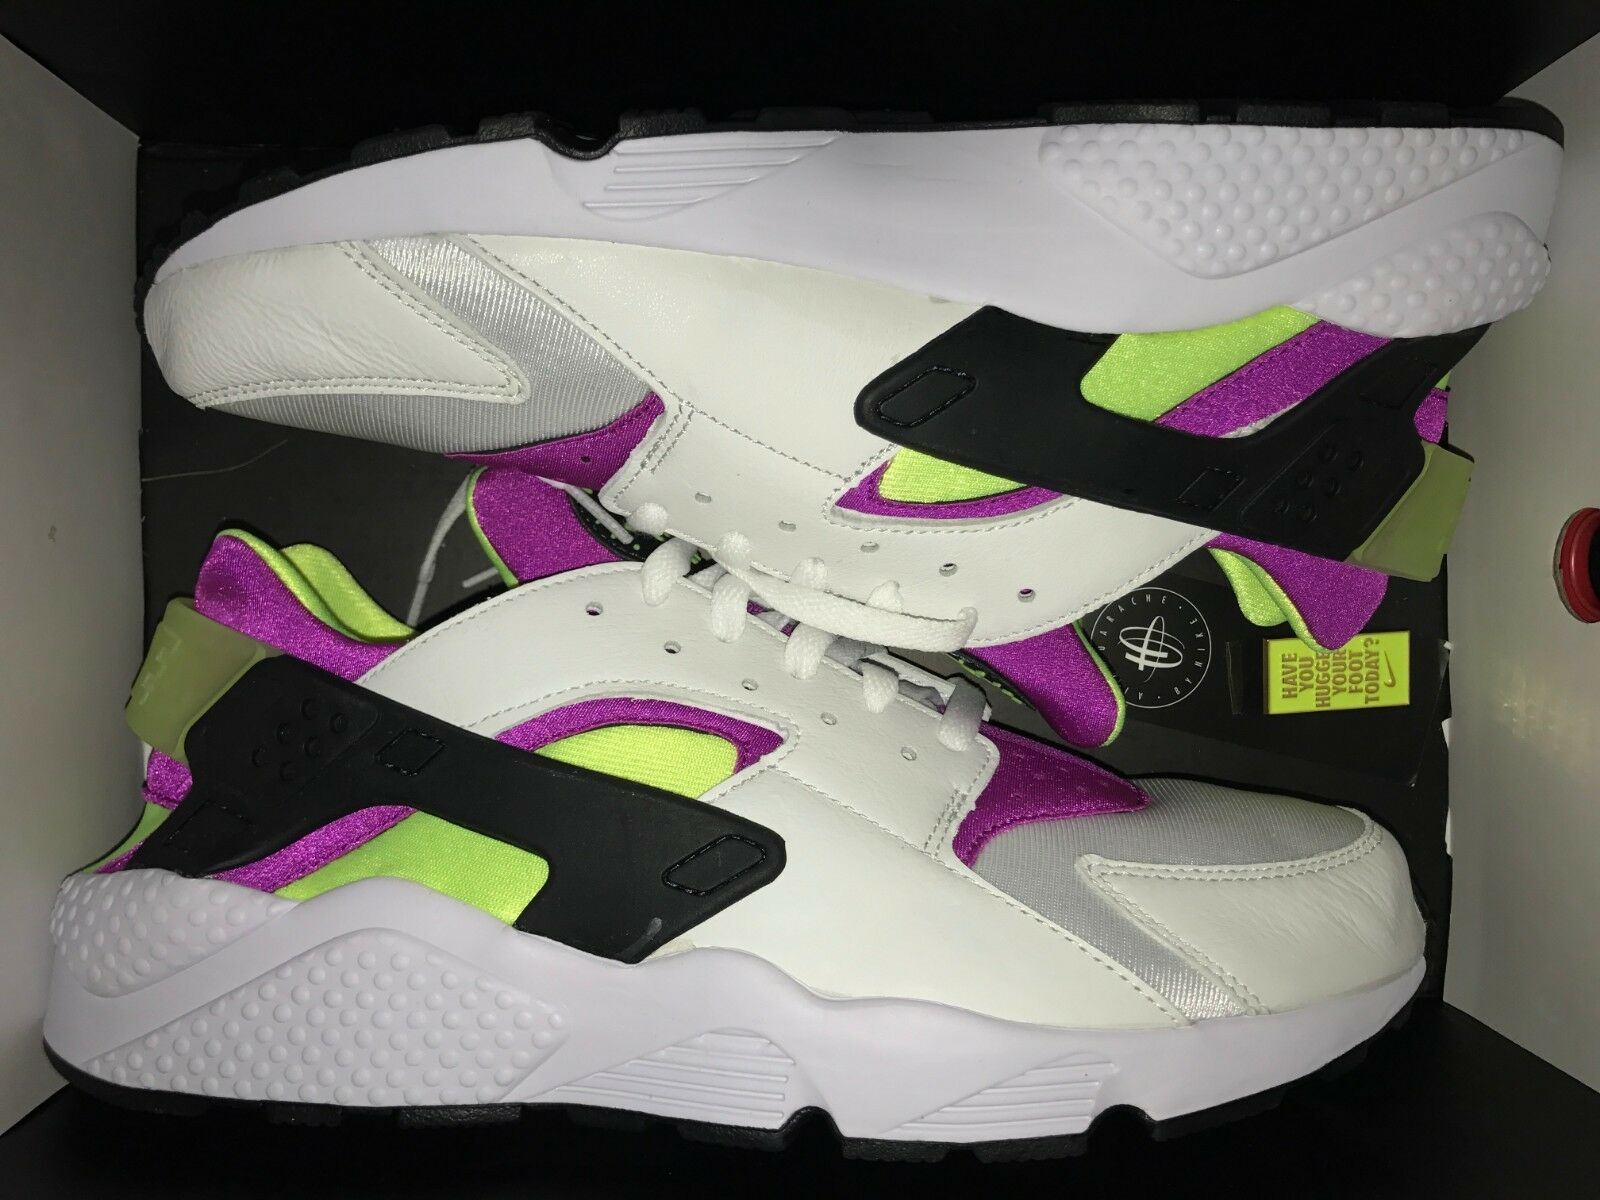 2018 Nike Air Huarache Run 91 OG QS SZ 12 White Magenta Black Volt AH8049-101